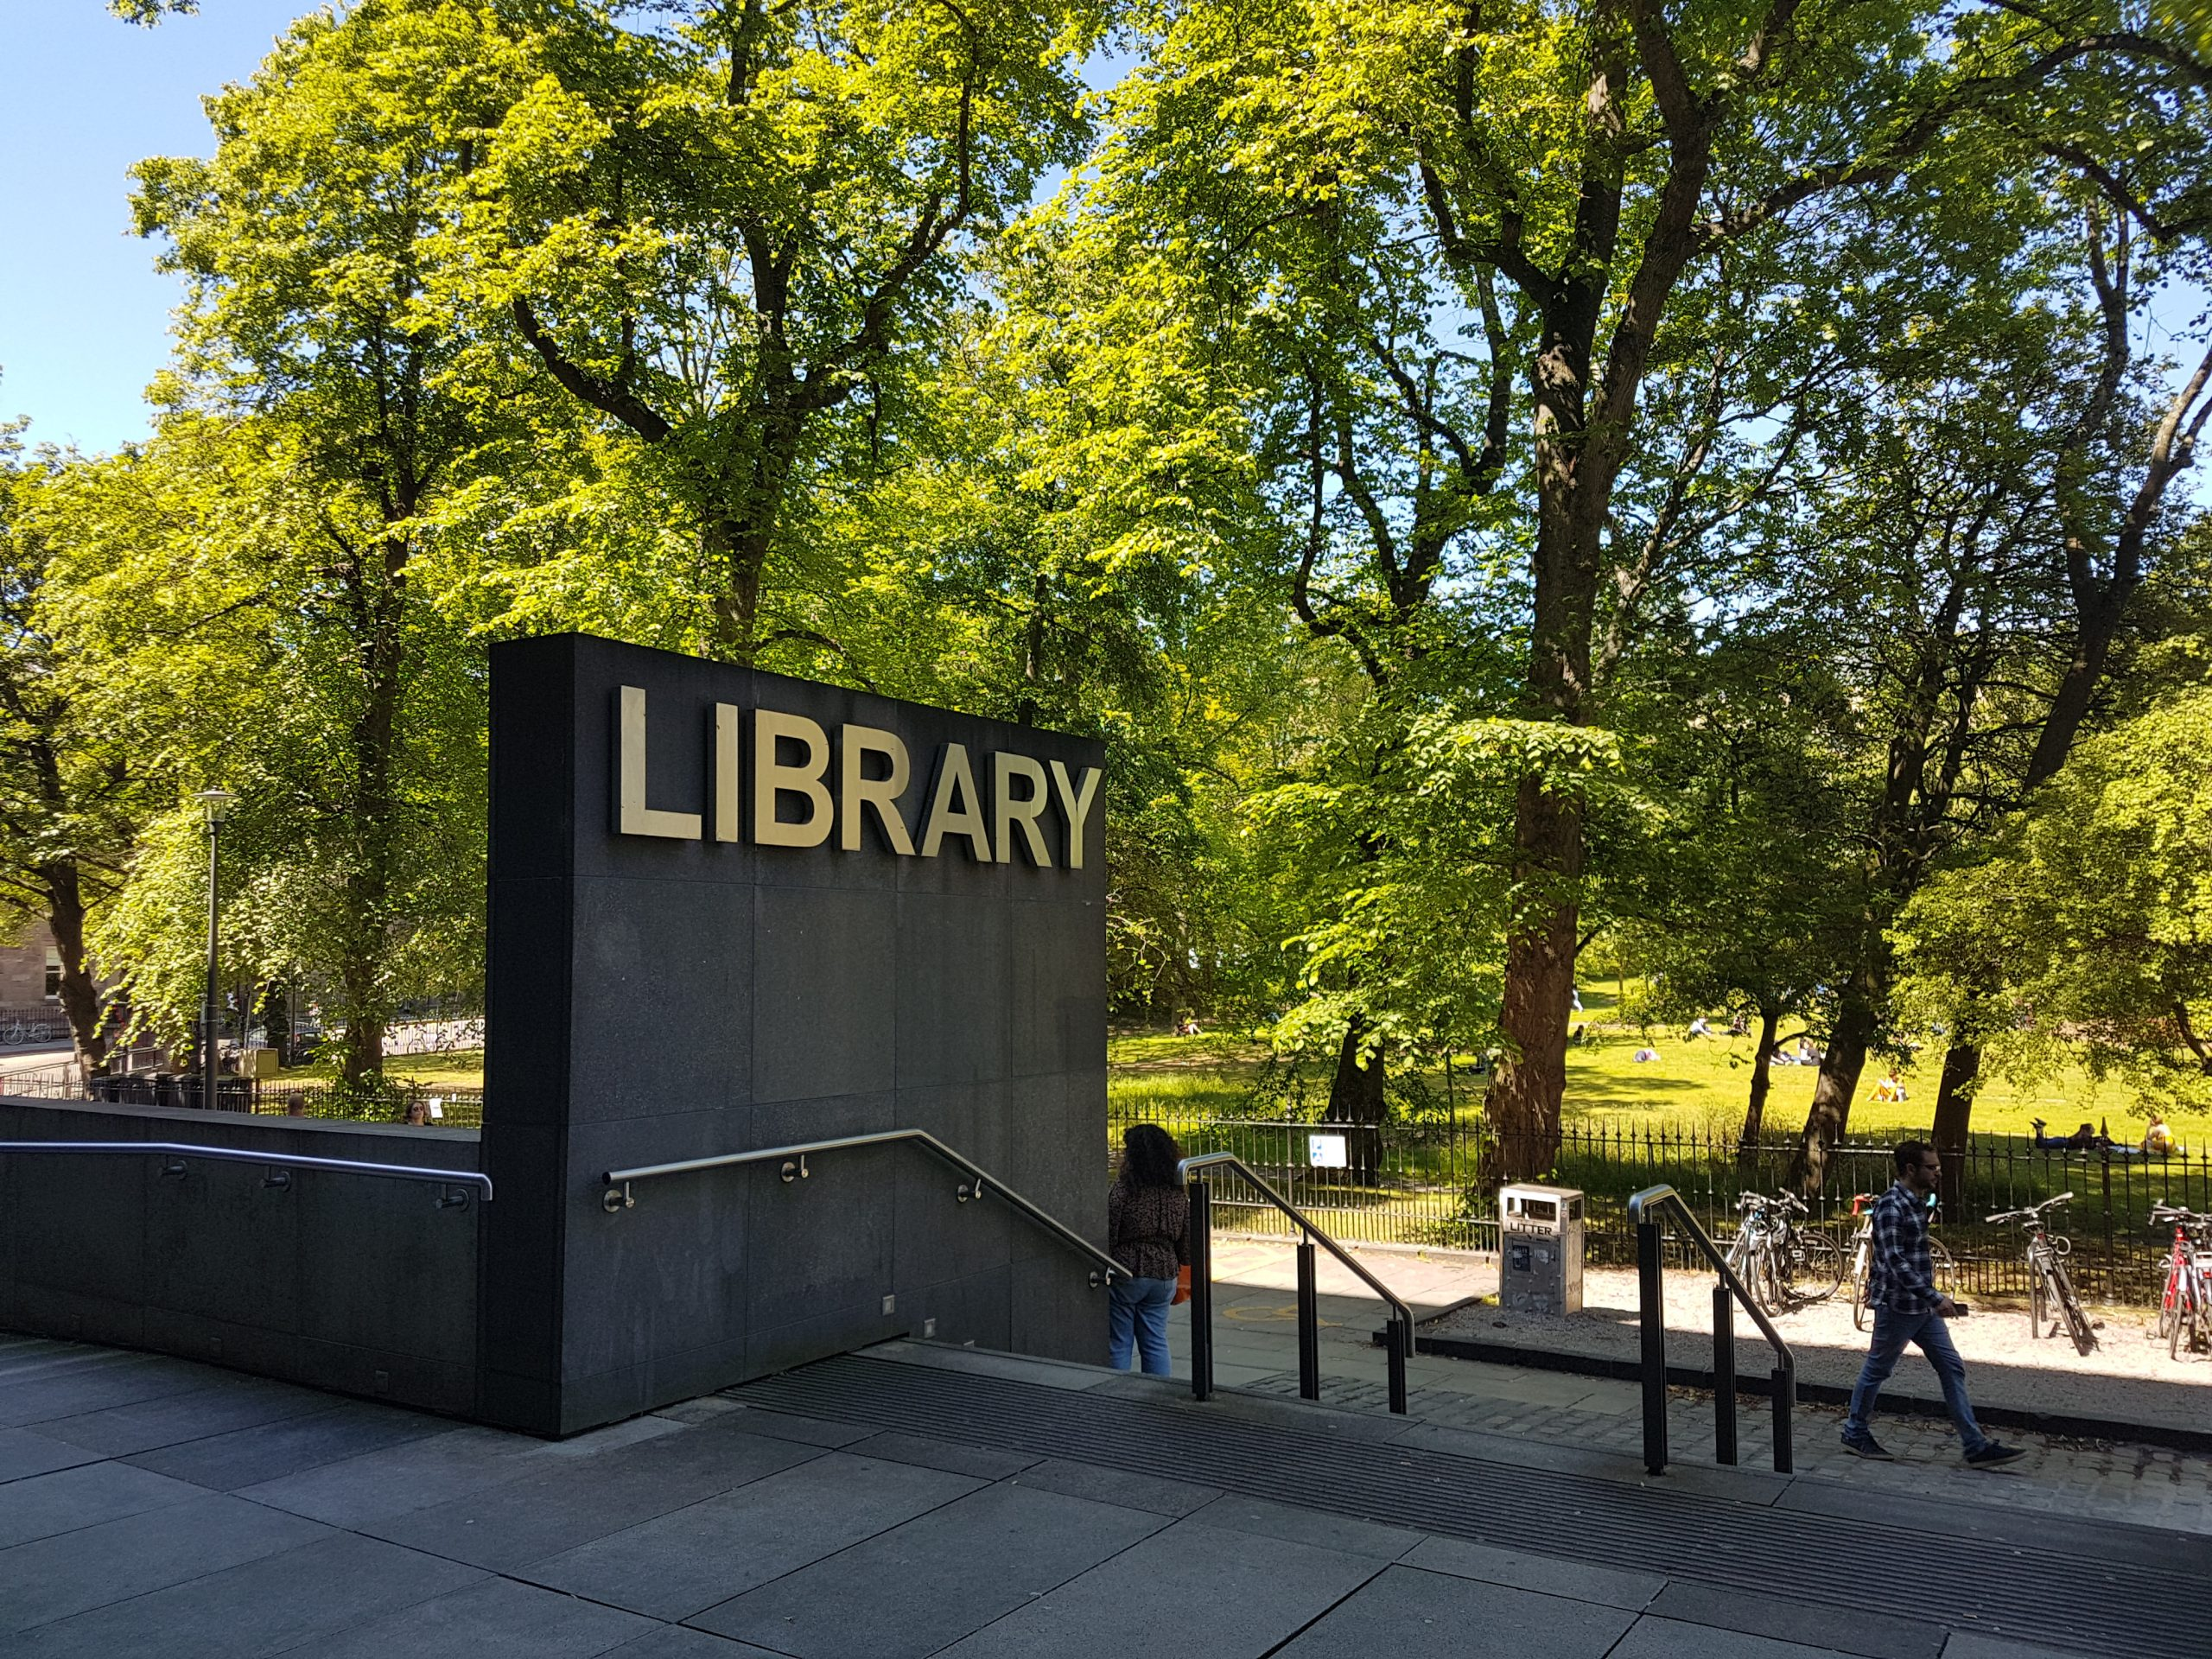 Teen attacked outside library - Viral News